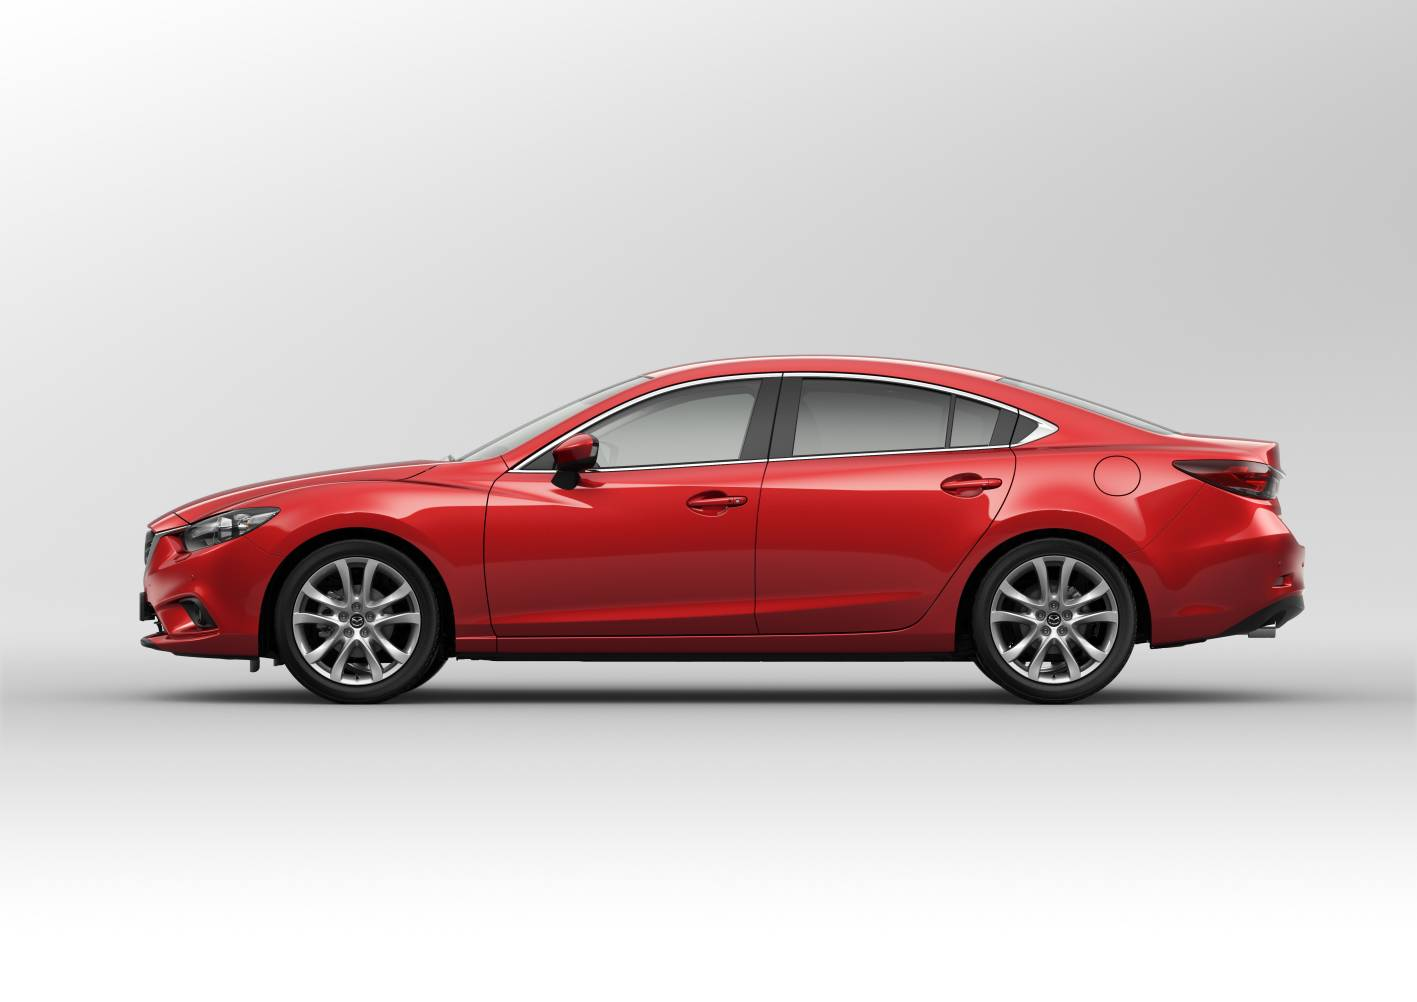 2013 mazda6 sedan premieres at moscow motor show. Black Bedroom Furniture Sets. Home Design Ideas